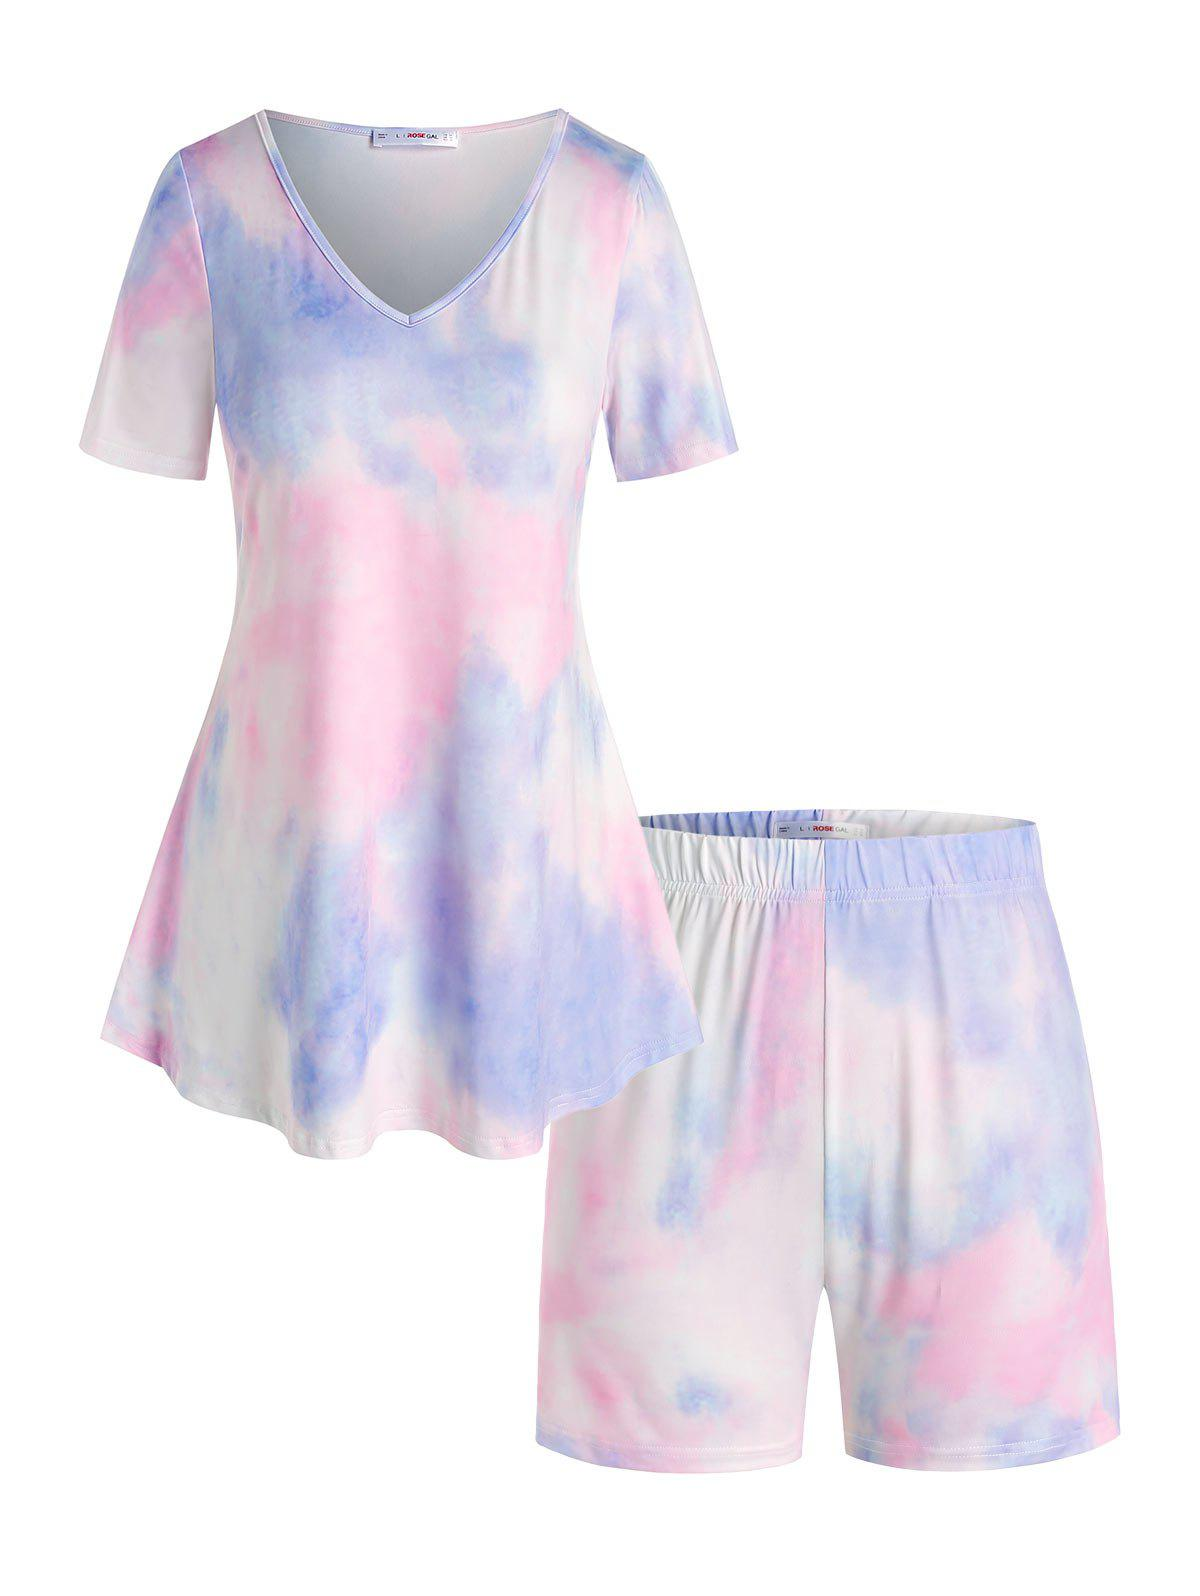 Buy Plus Size Lounge Tie Dye V Neck Shorts Set